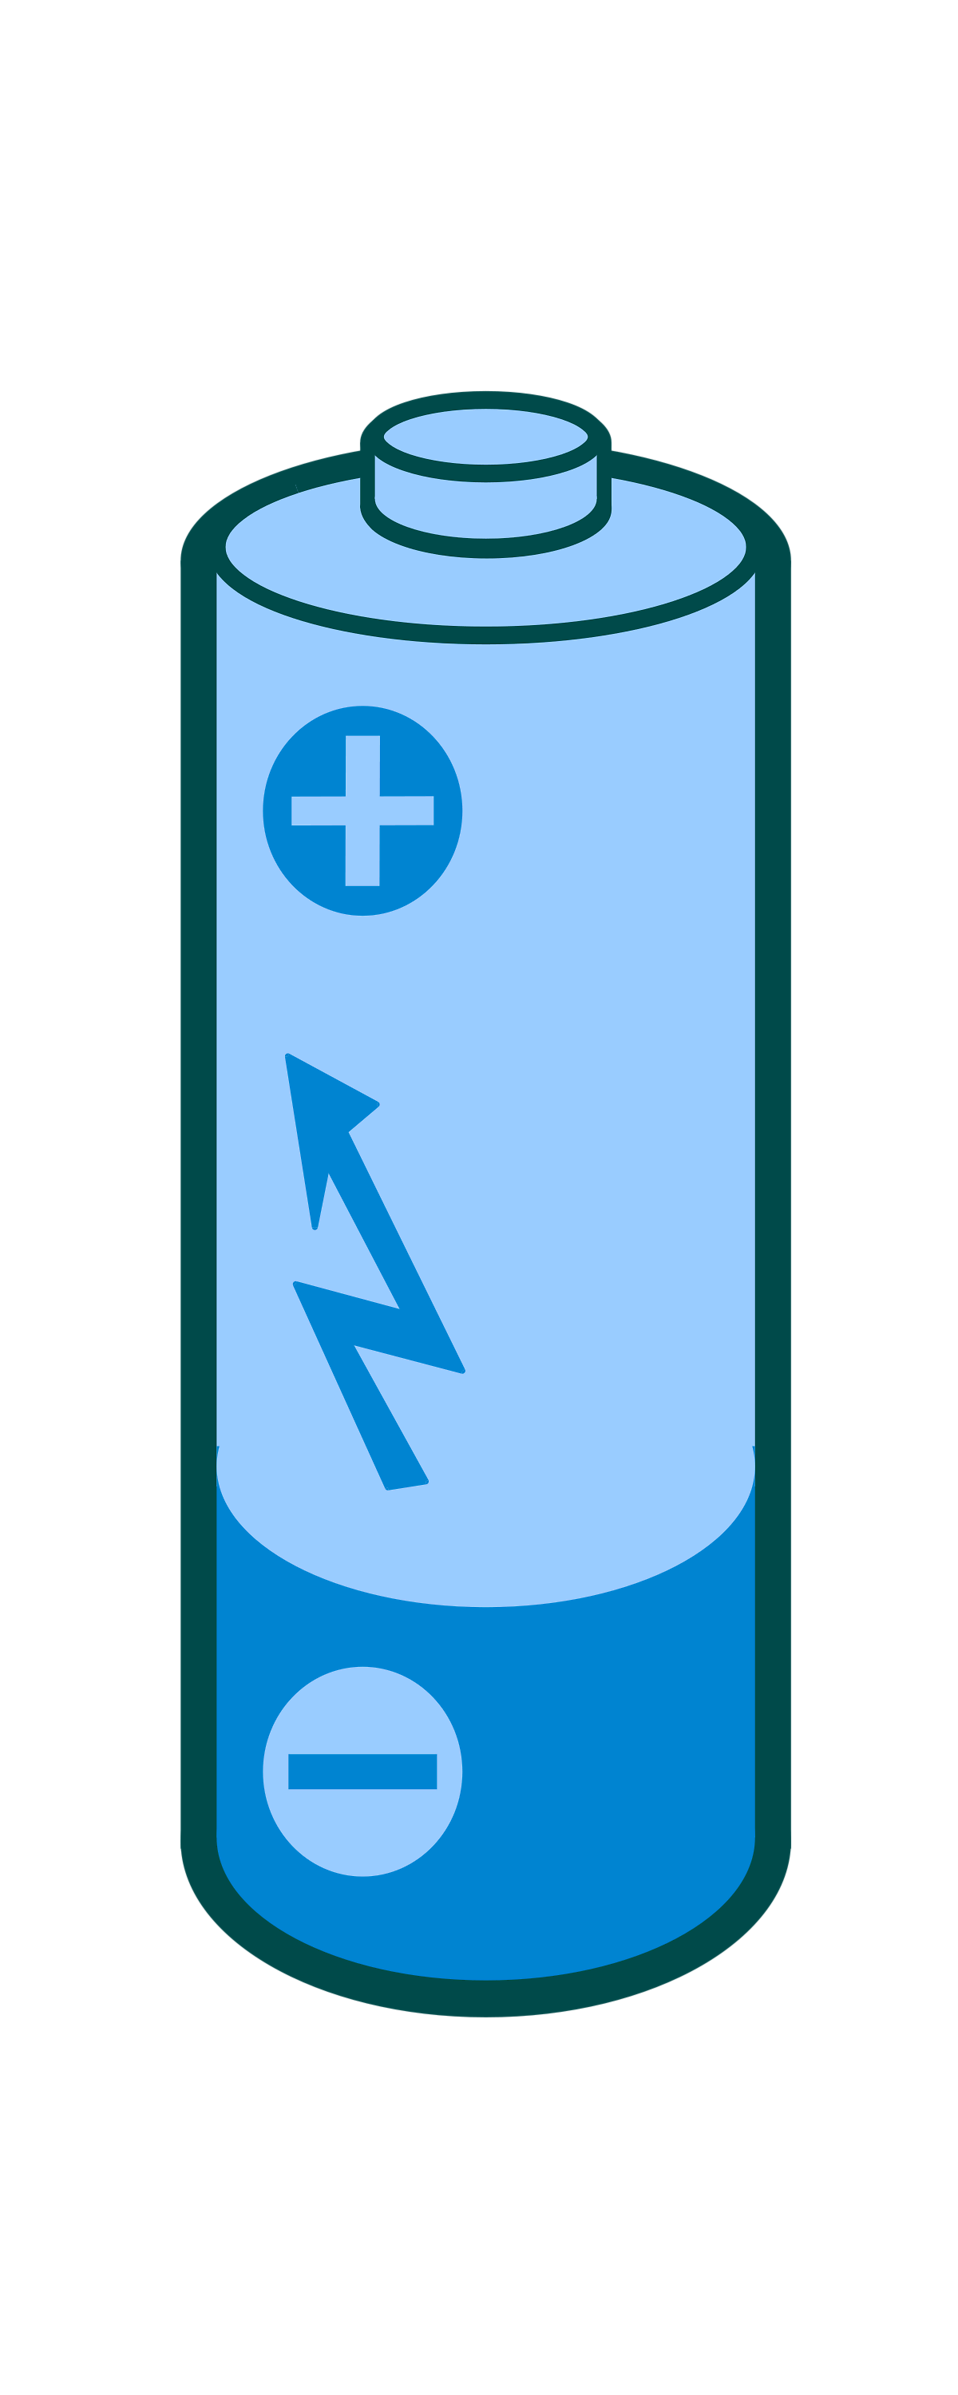 Technology clipart drawing. Battery free stock photo